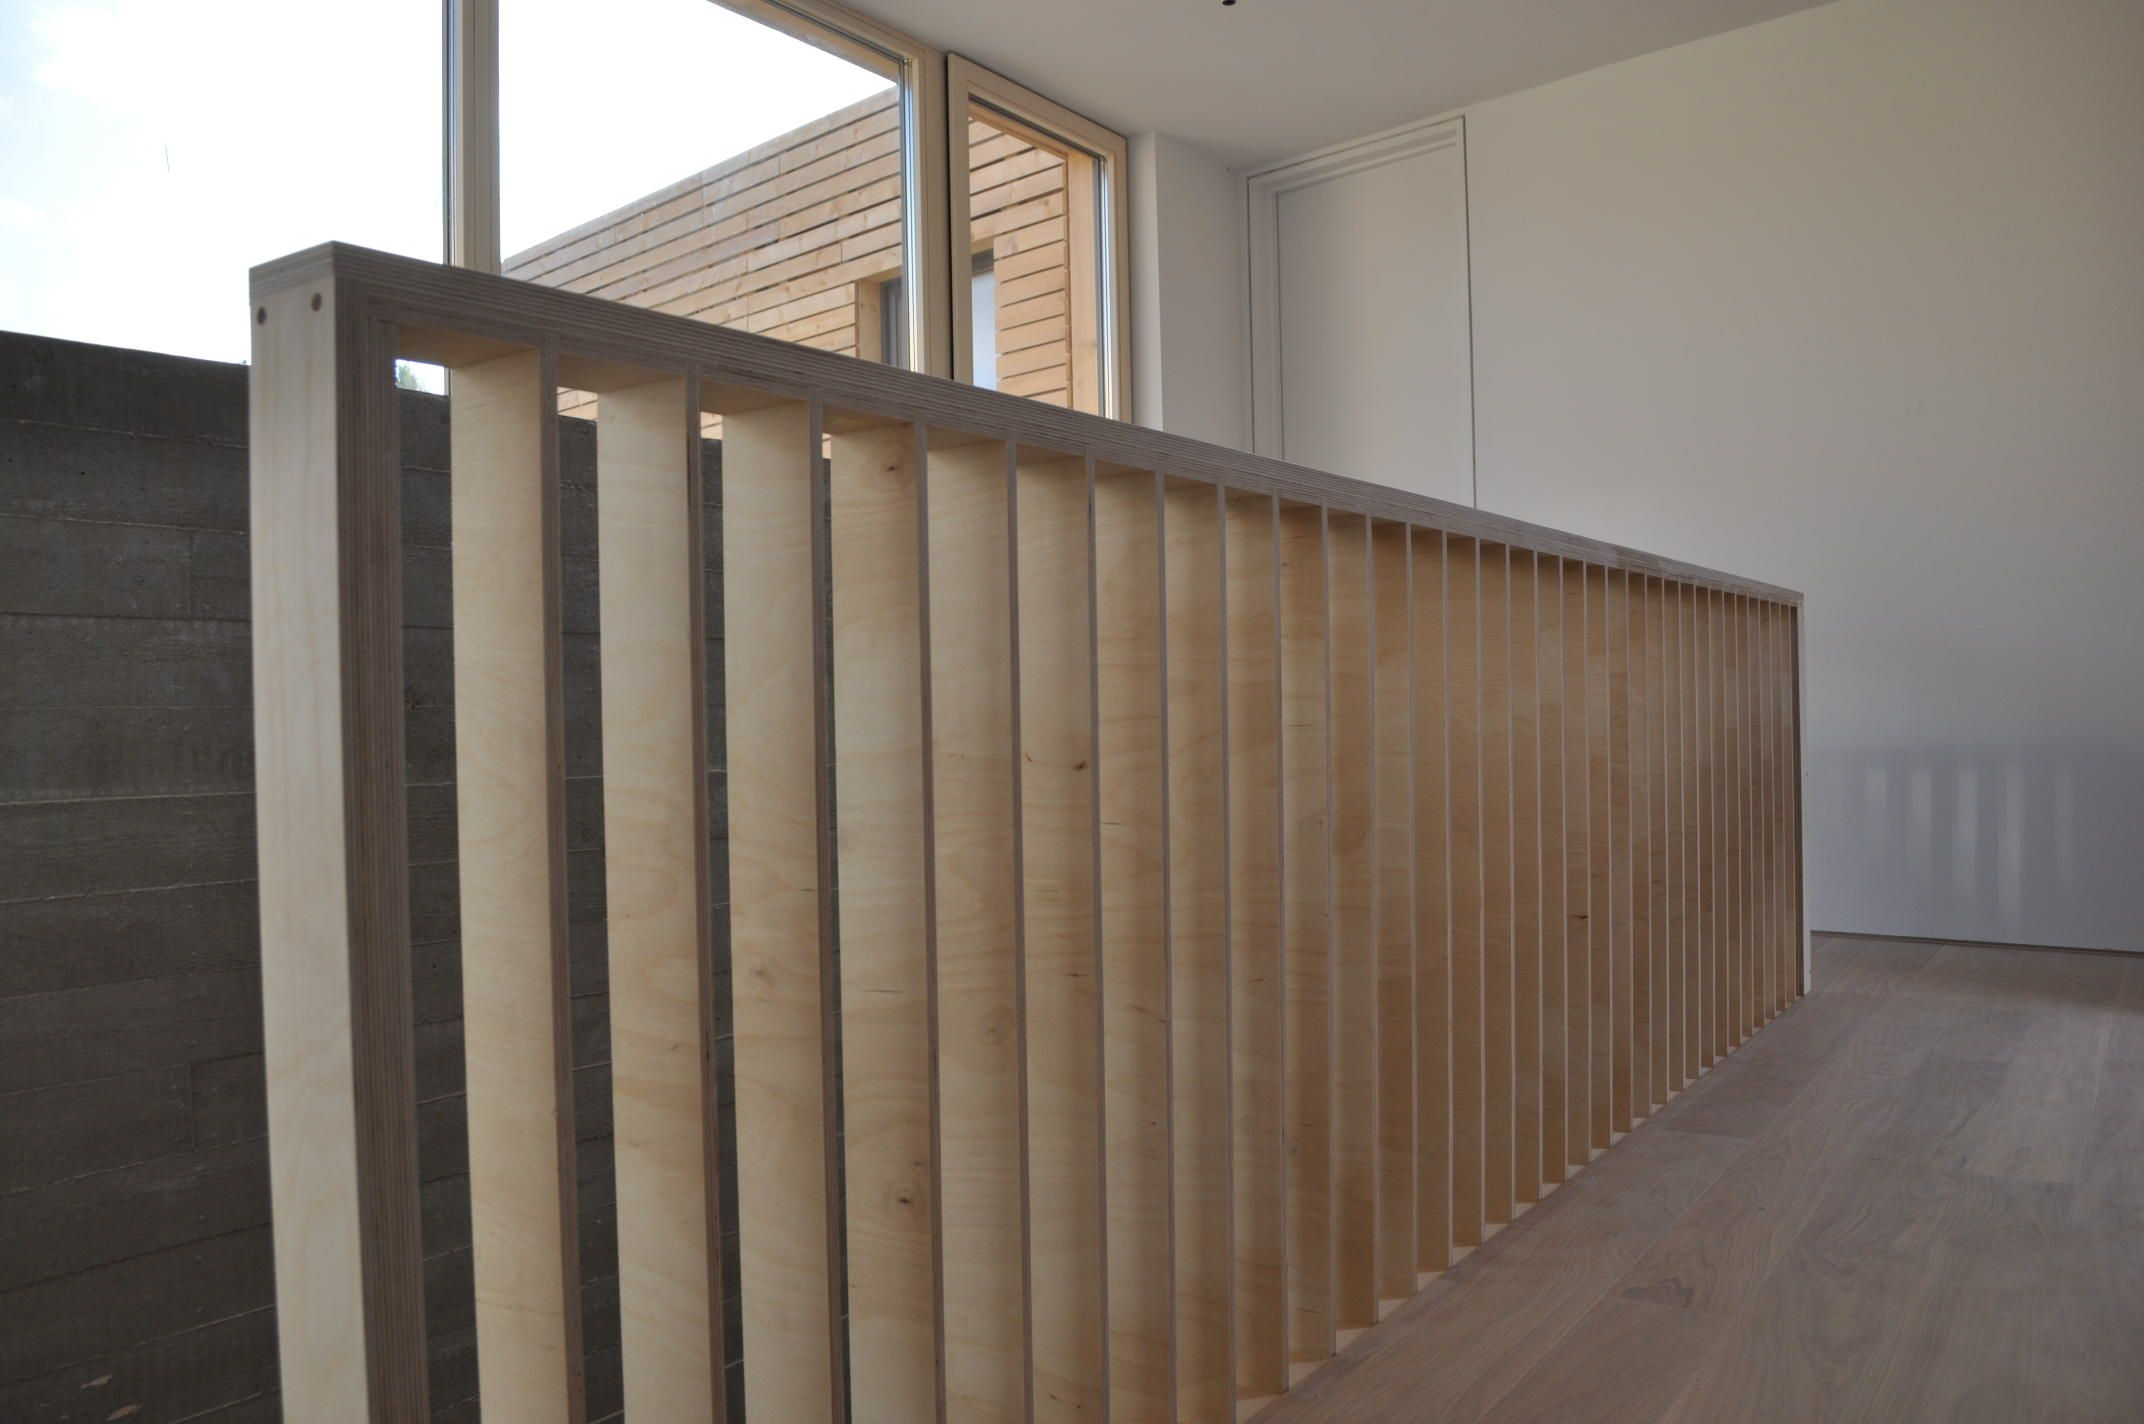 A Lovely Bannister Kevin Mccloud, Grand Design Norfolk, Designed By